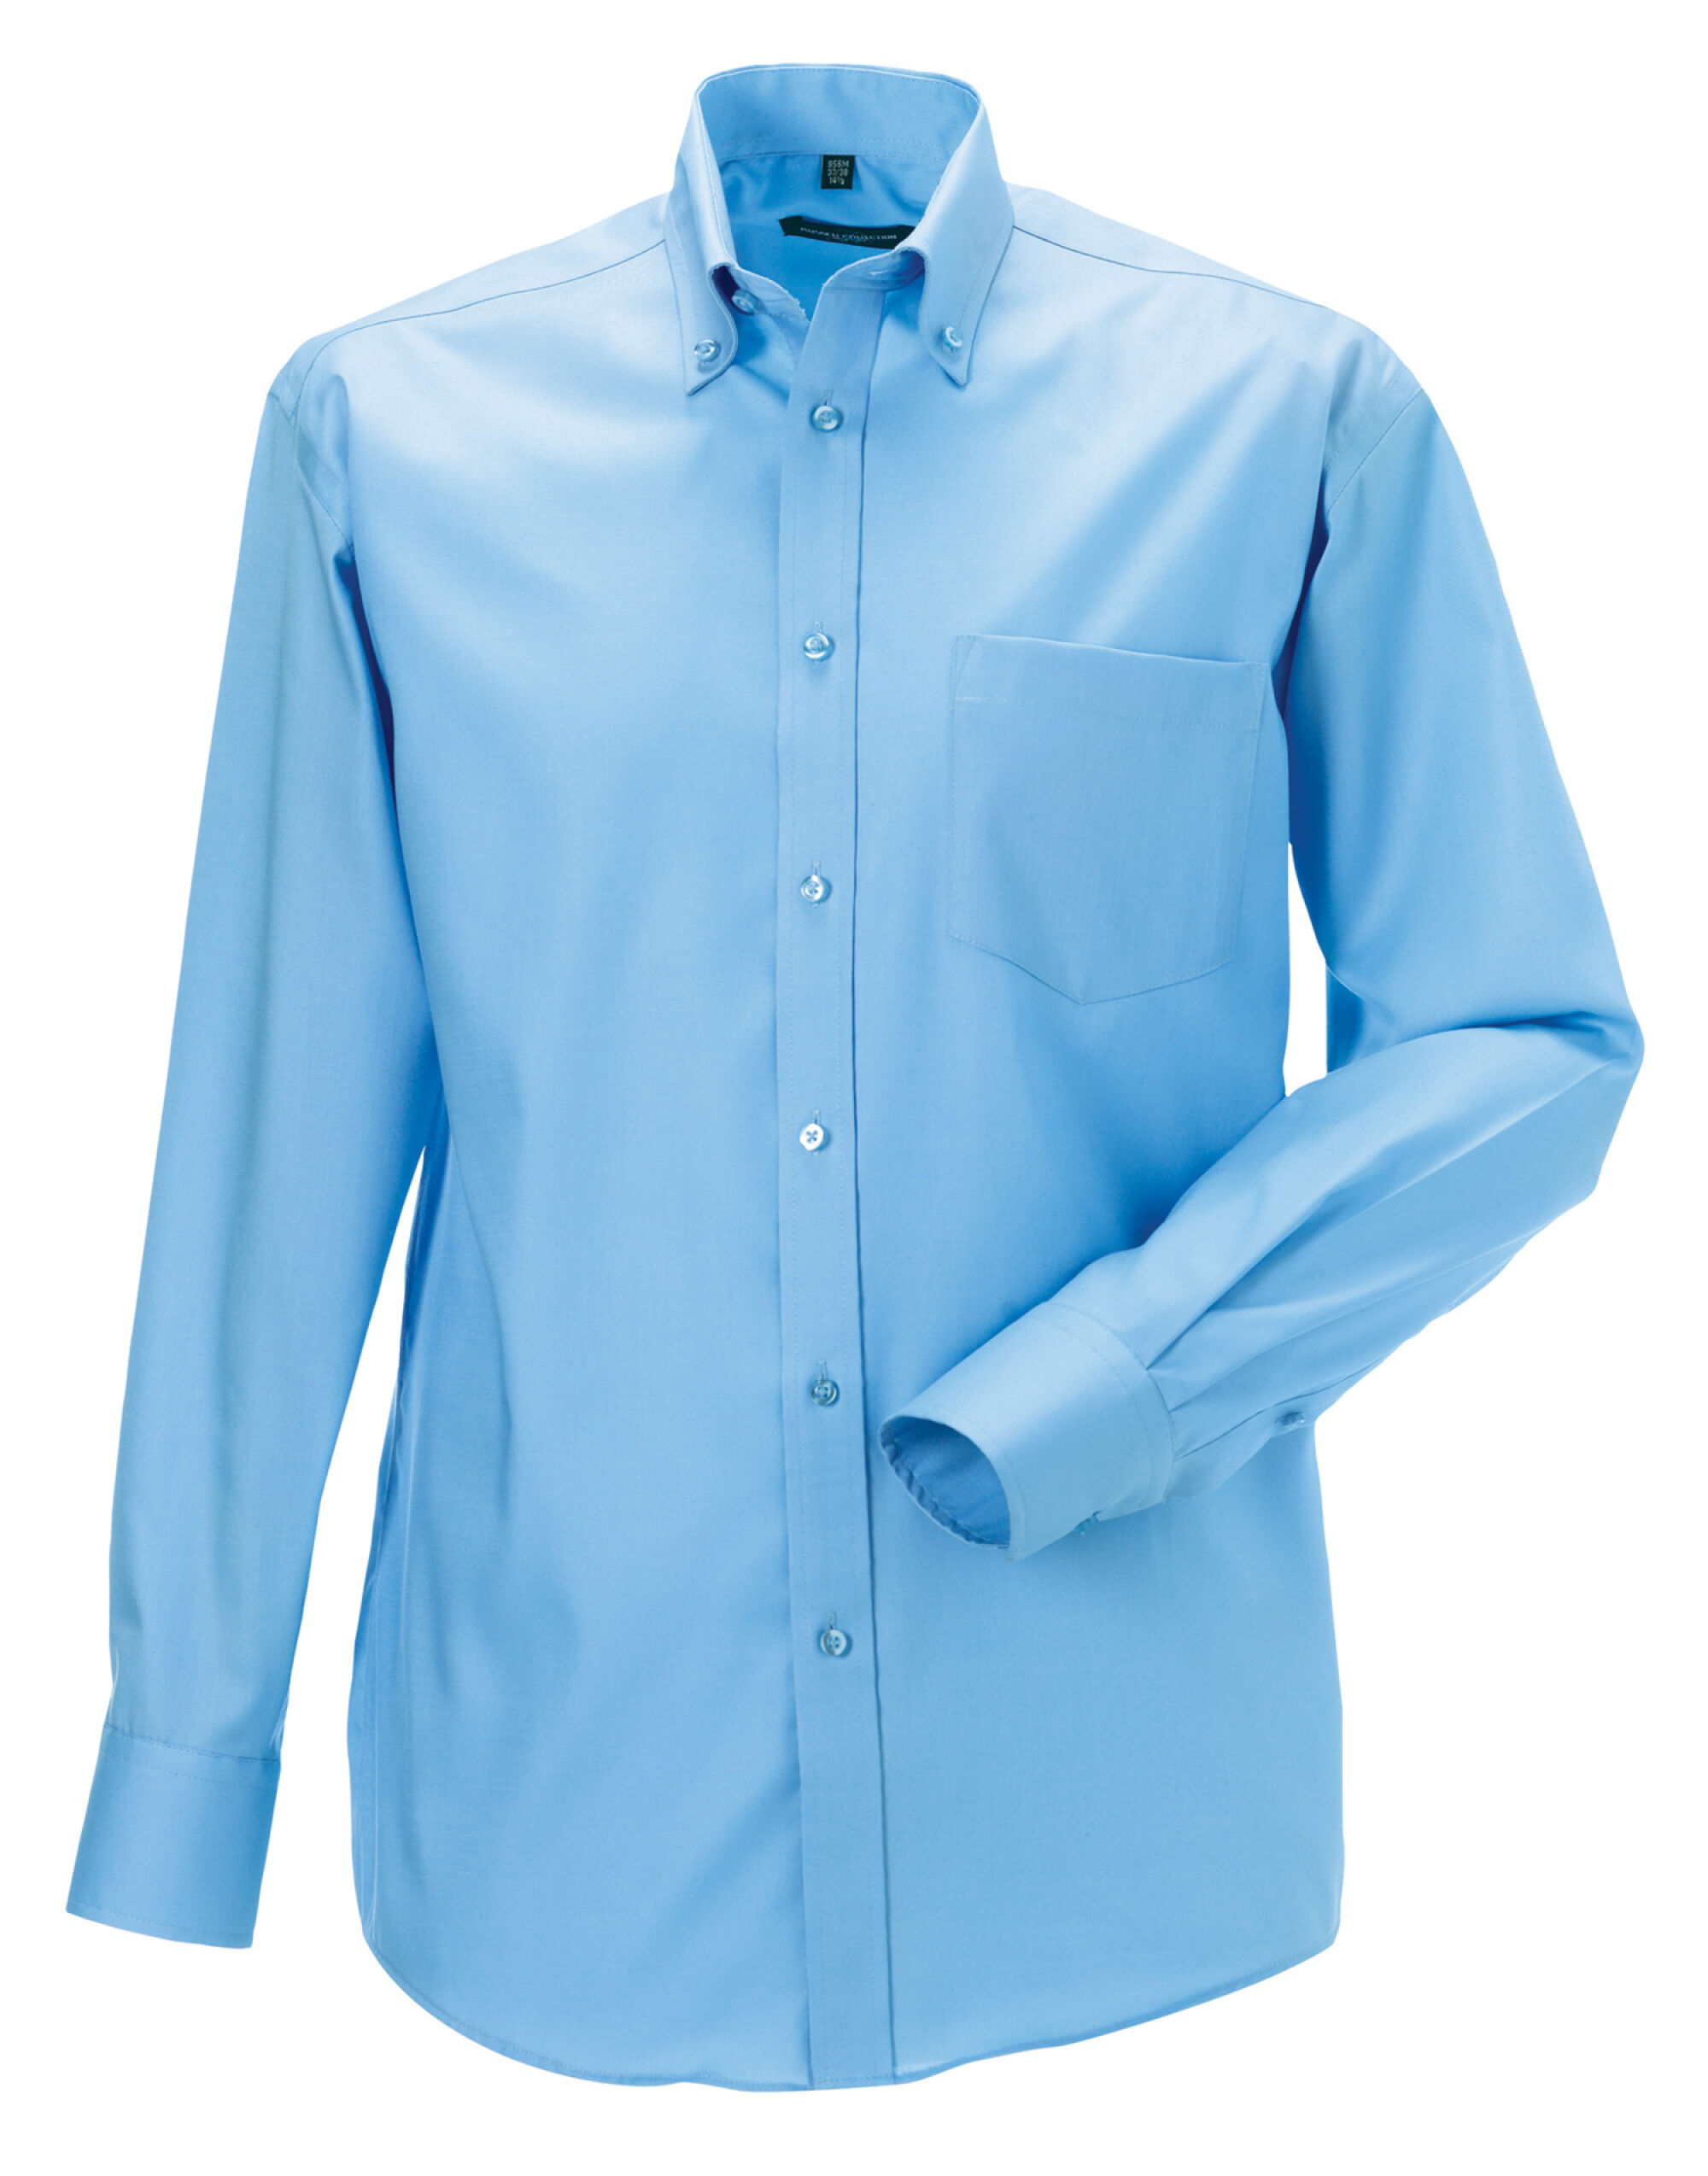 Men's Long Sleeve Ultimate Non-Iron Shirt